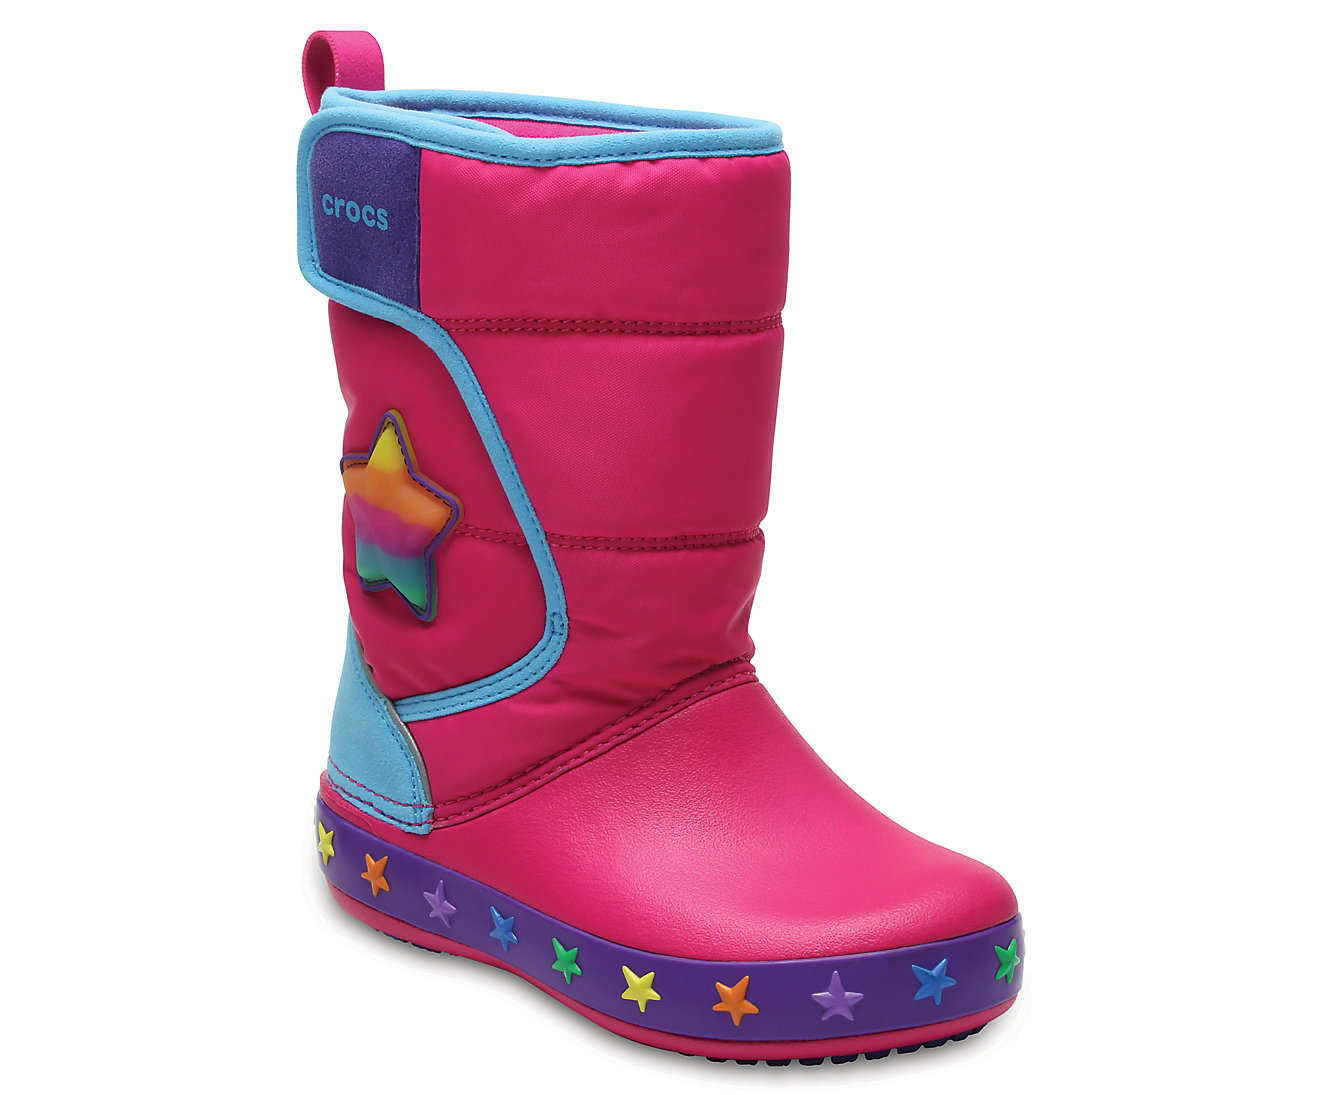 Kids' CrocsLights LodgePoint Star Boot